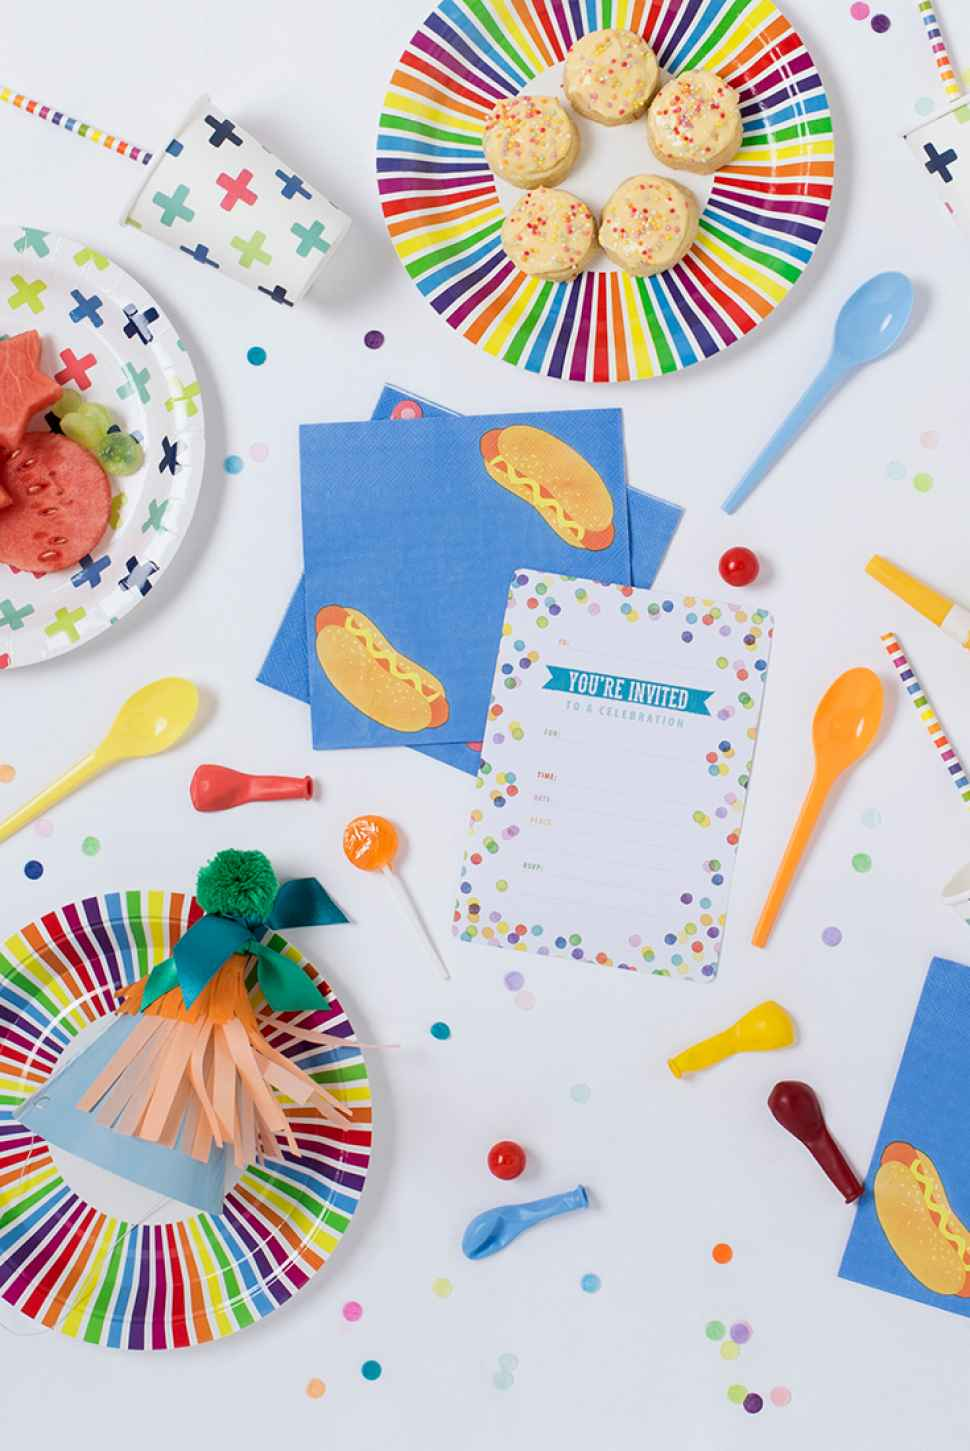 Colourful party invitation and paper plates.